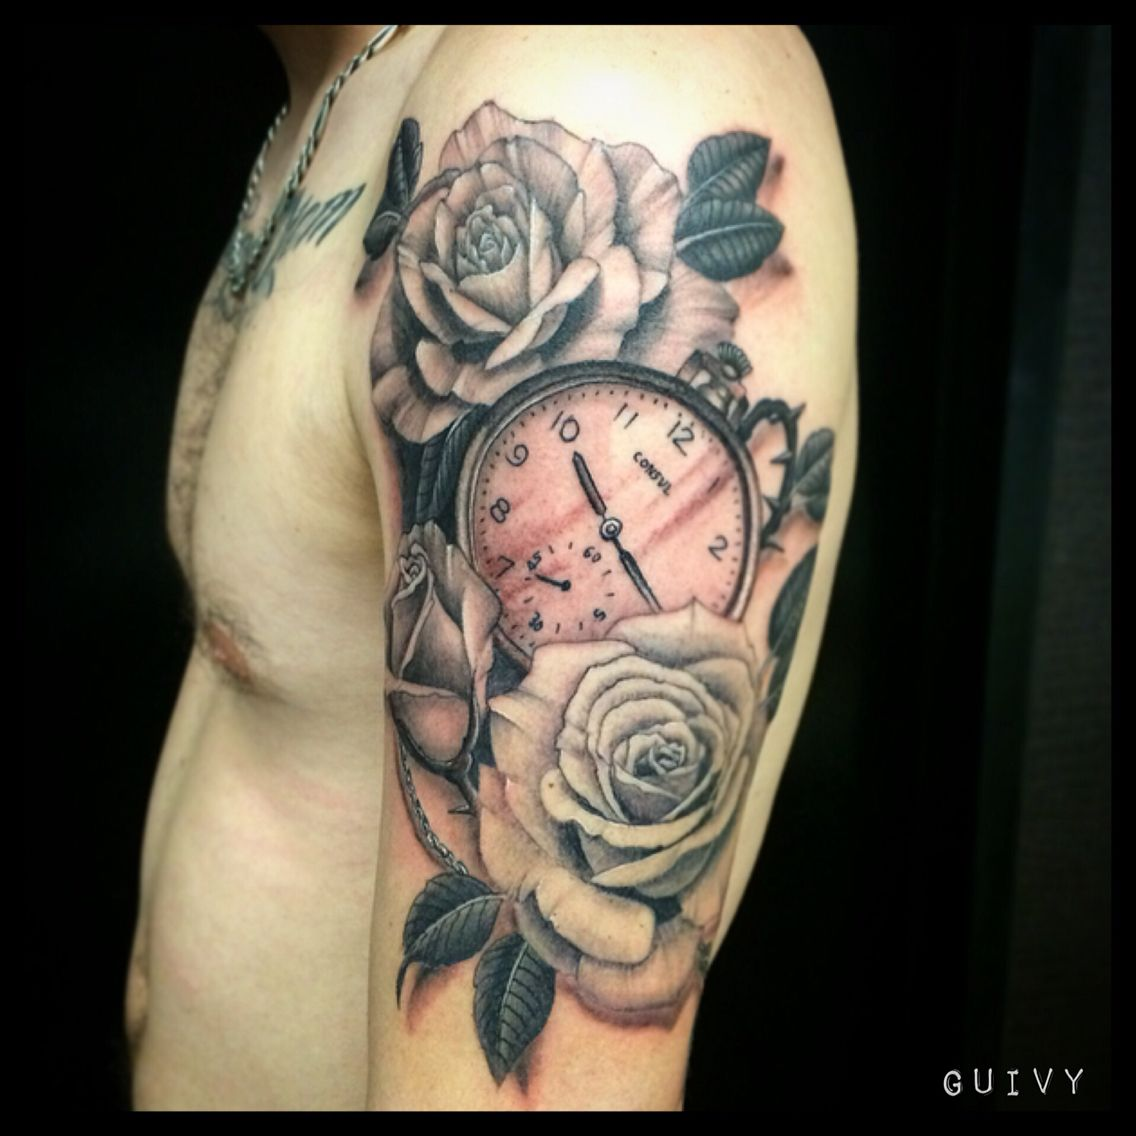 Tattoo by guivy geneve switzerland pocket watch roses montre a gousset realistic - Montre a gousset tattoo ...